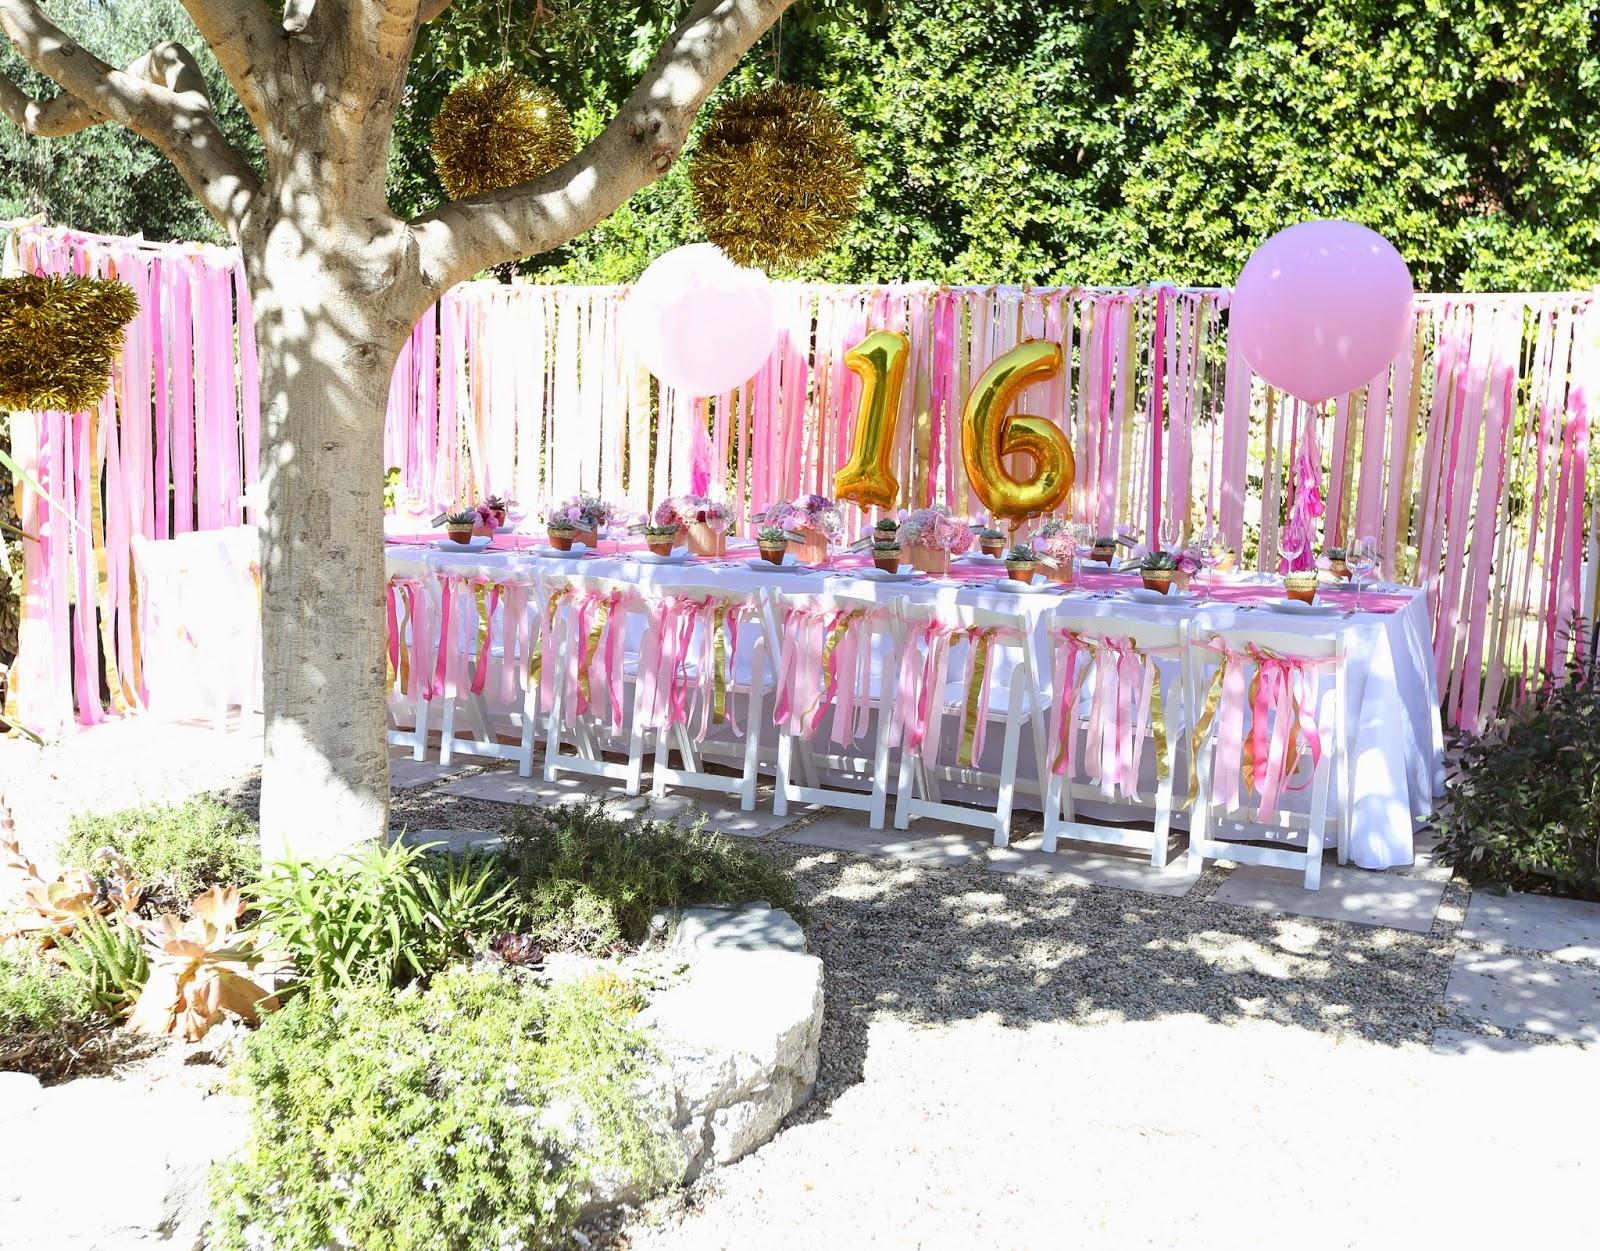 The coop sweet 16 party at home for Home sweet home party decorations